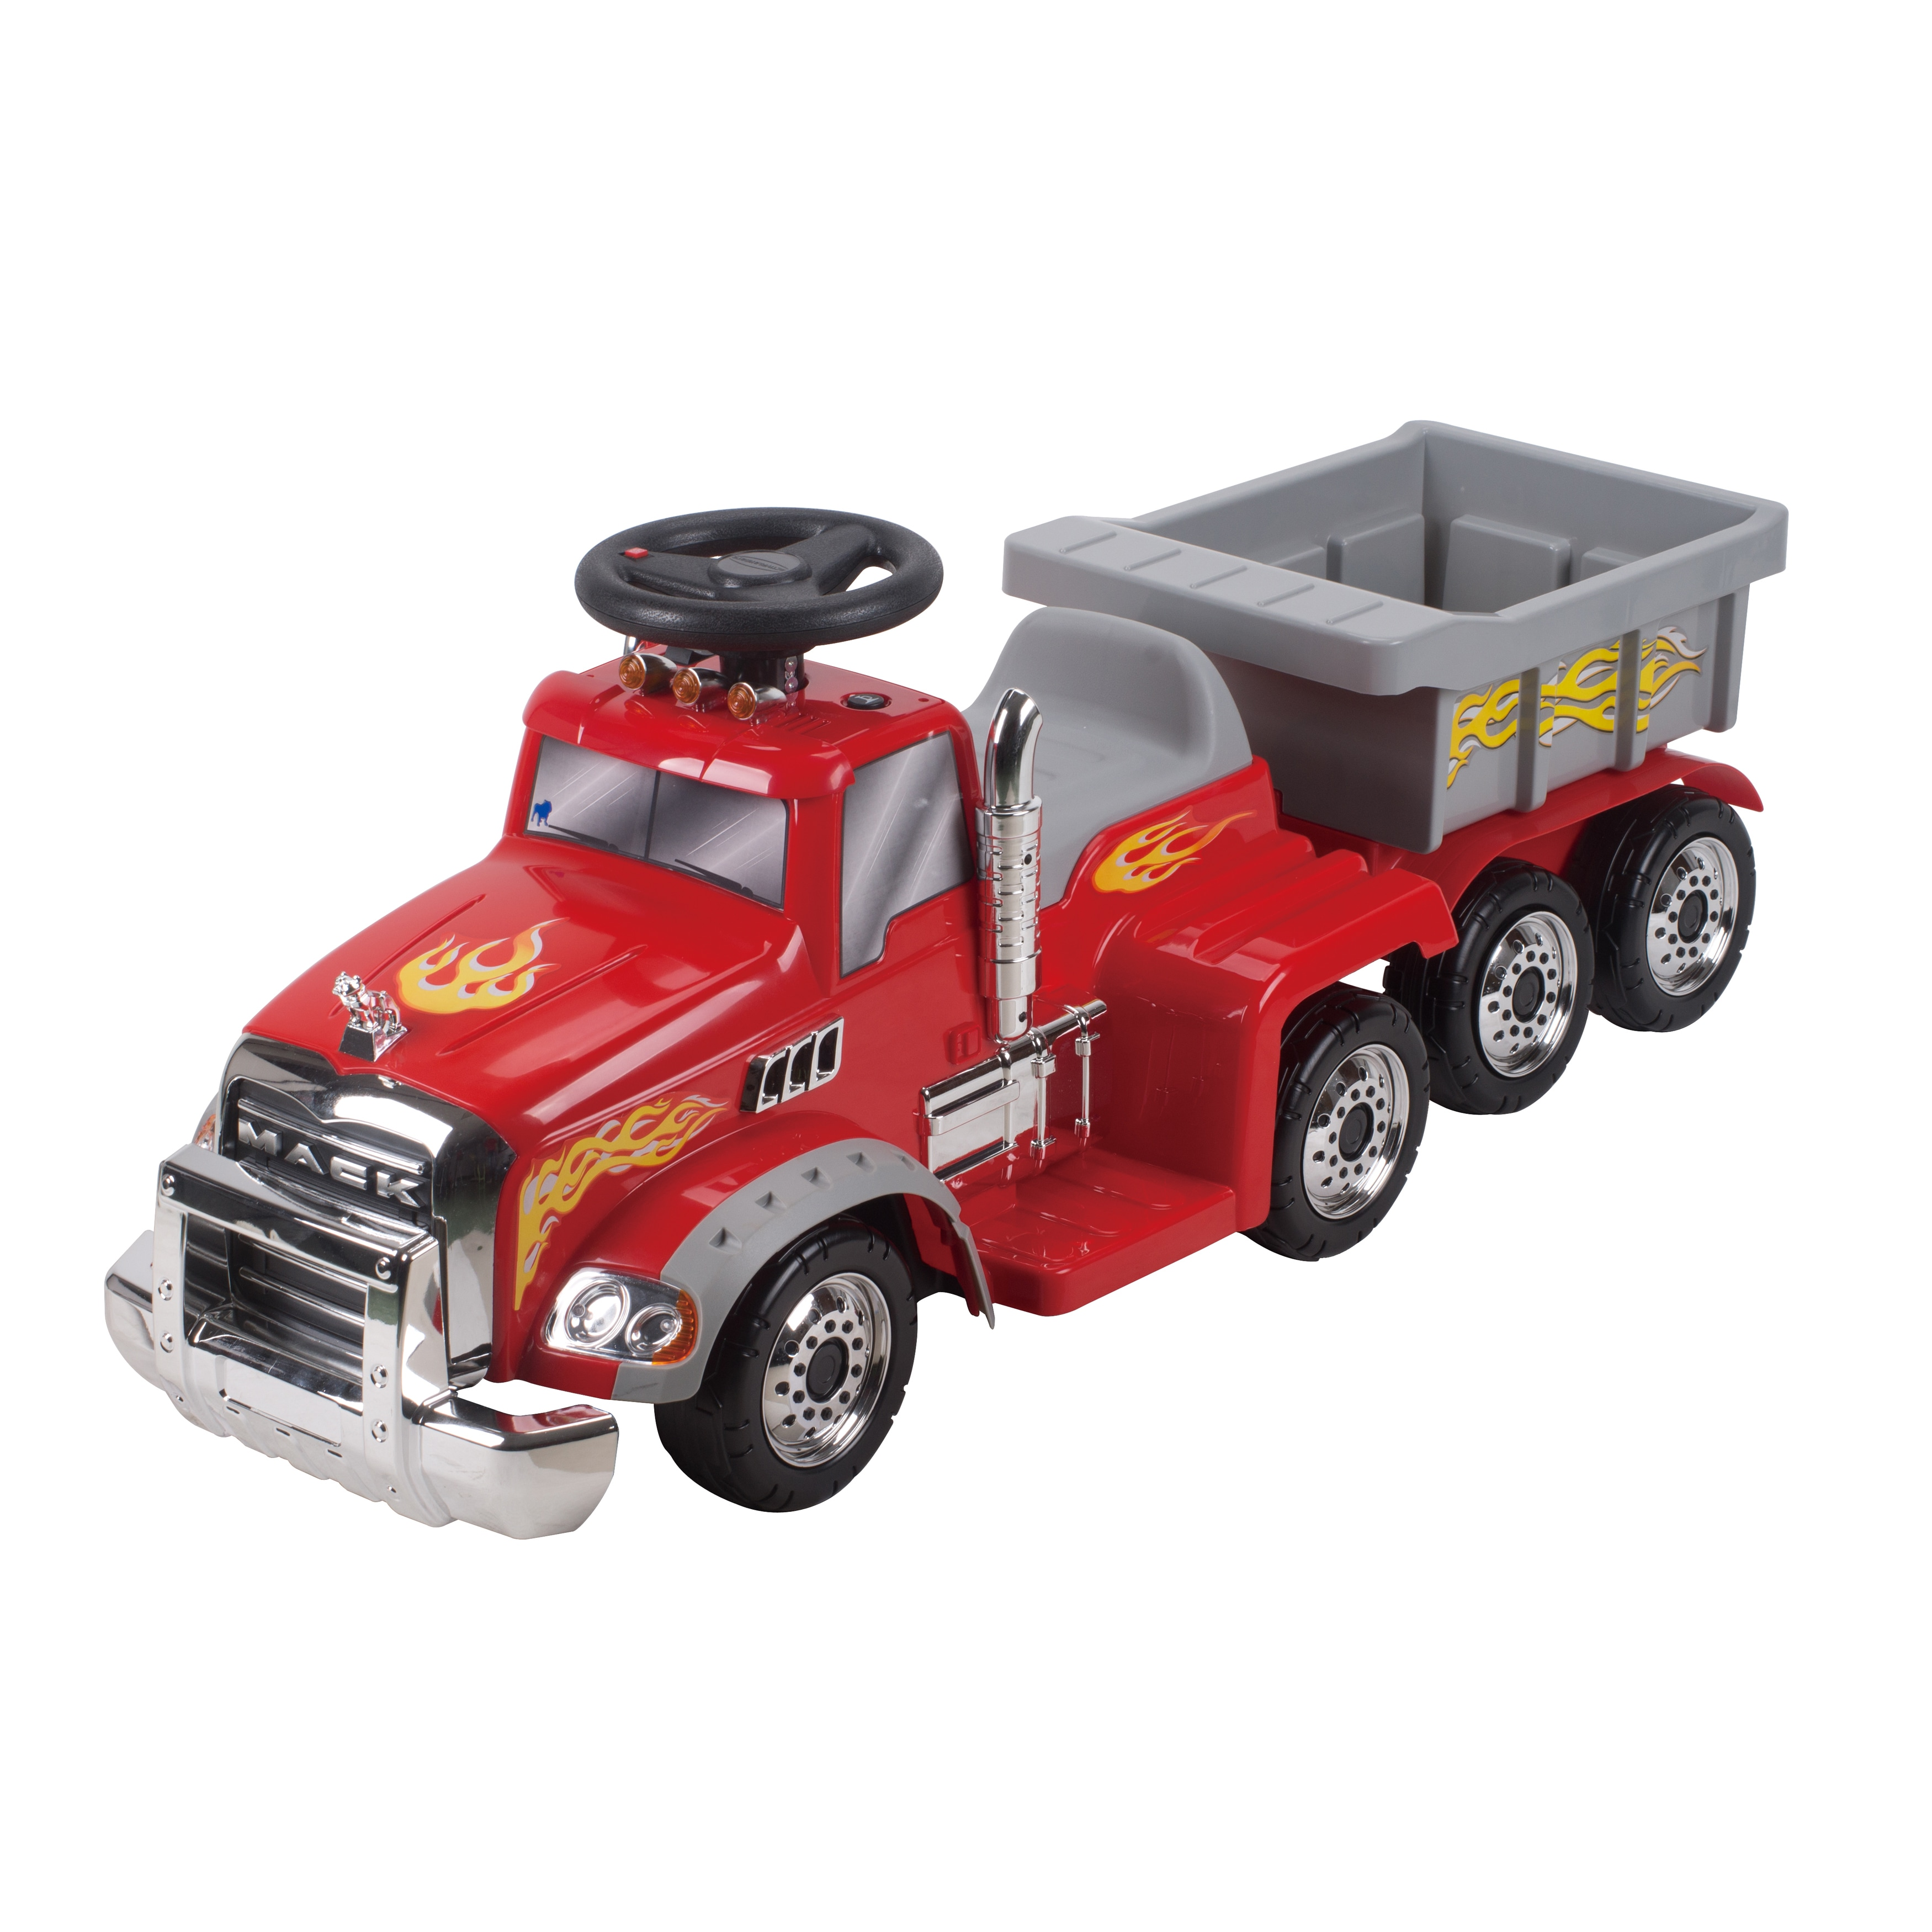 Mack Truck With Trailer 6 Volt Ride on (RedDimensions 47.5 inches long x 18 inches wide x 18 inches highWeight 18 poundsBattery type 6 VoltsBattery running time 1 2 HoursCharging time 1 hourAccessories included n/aRecommended ages Ages 18 to 36 Mon